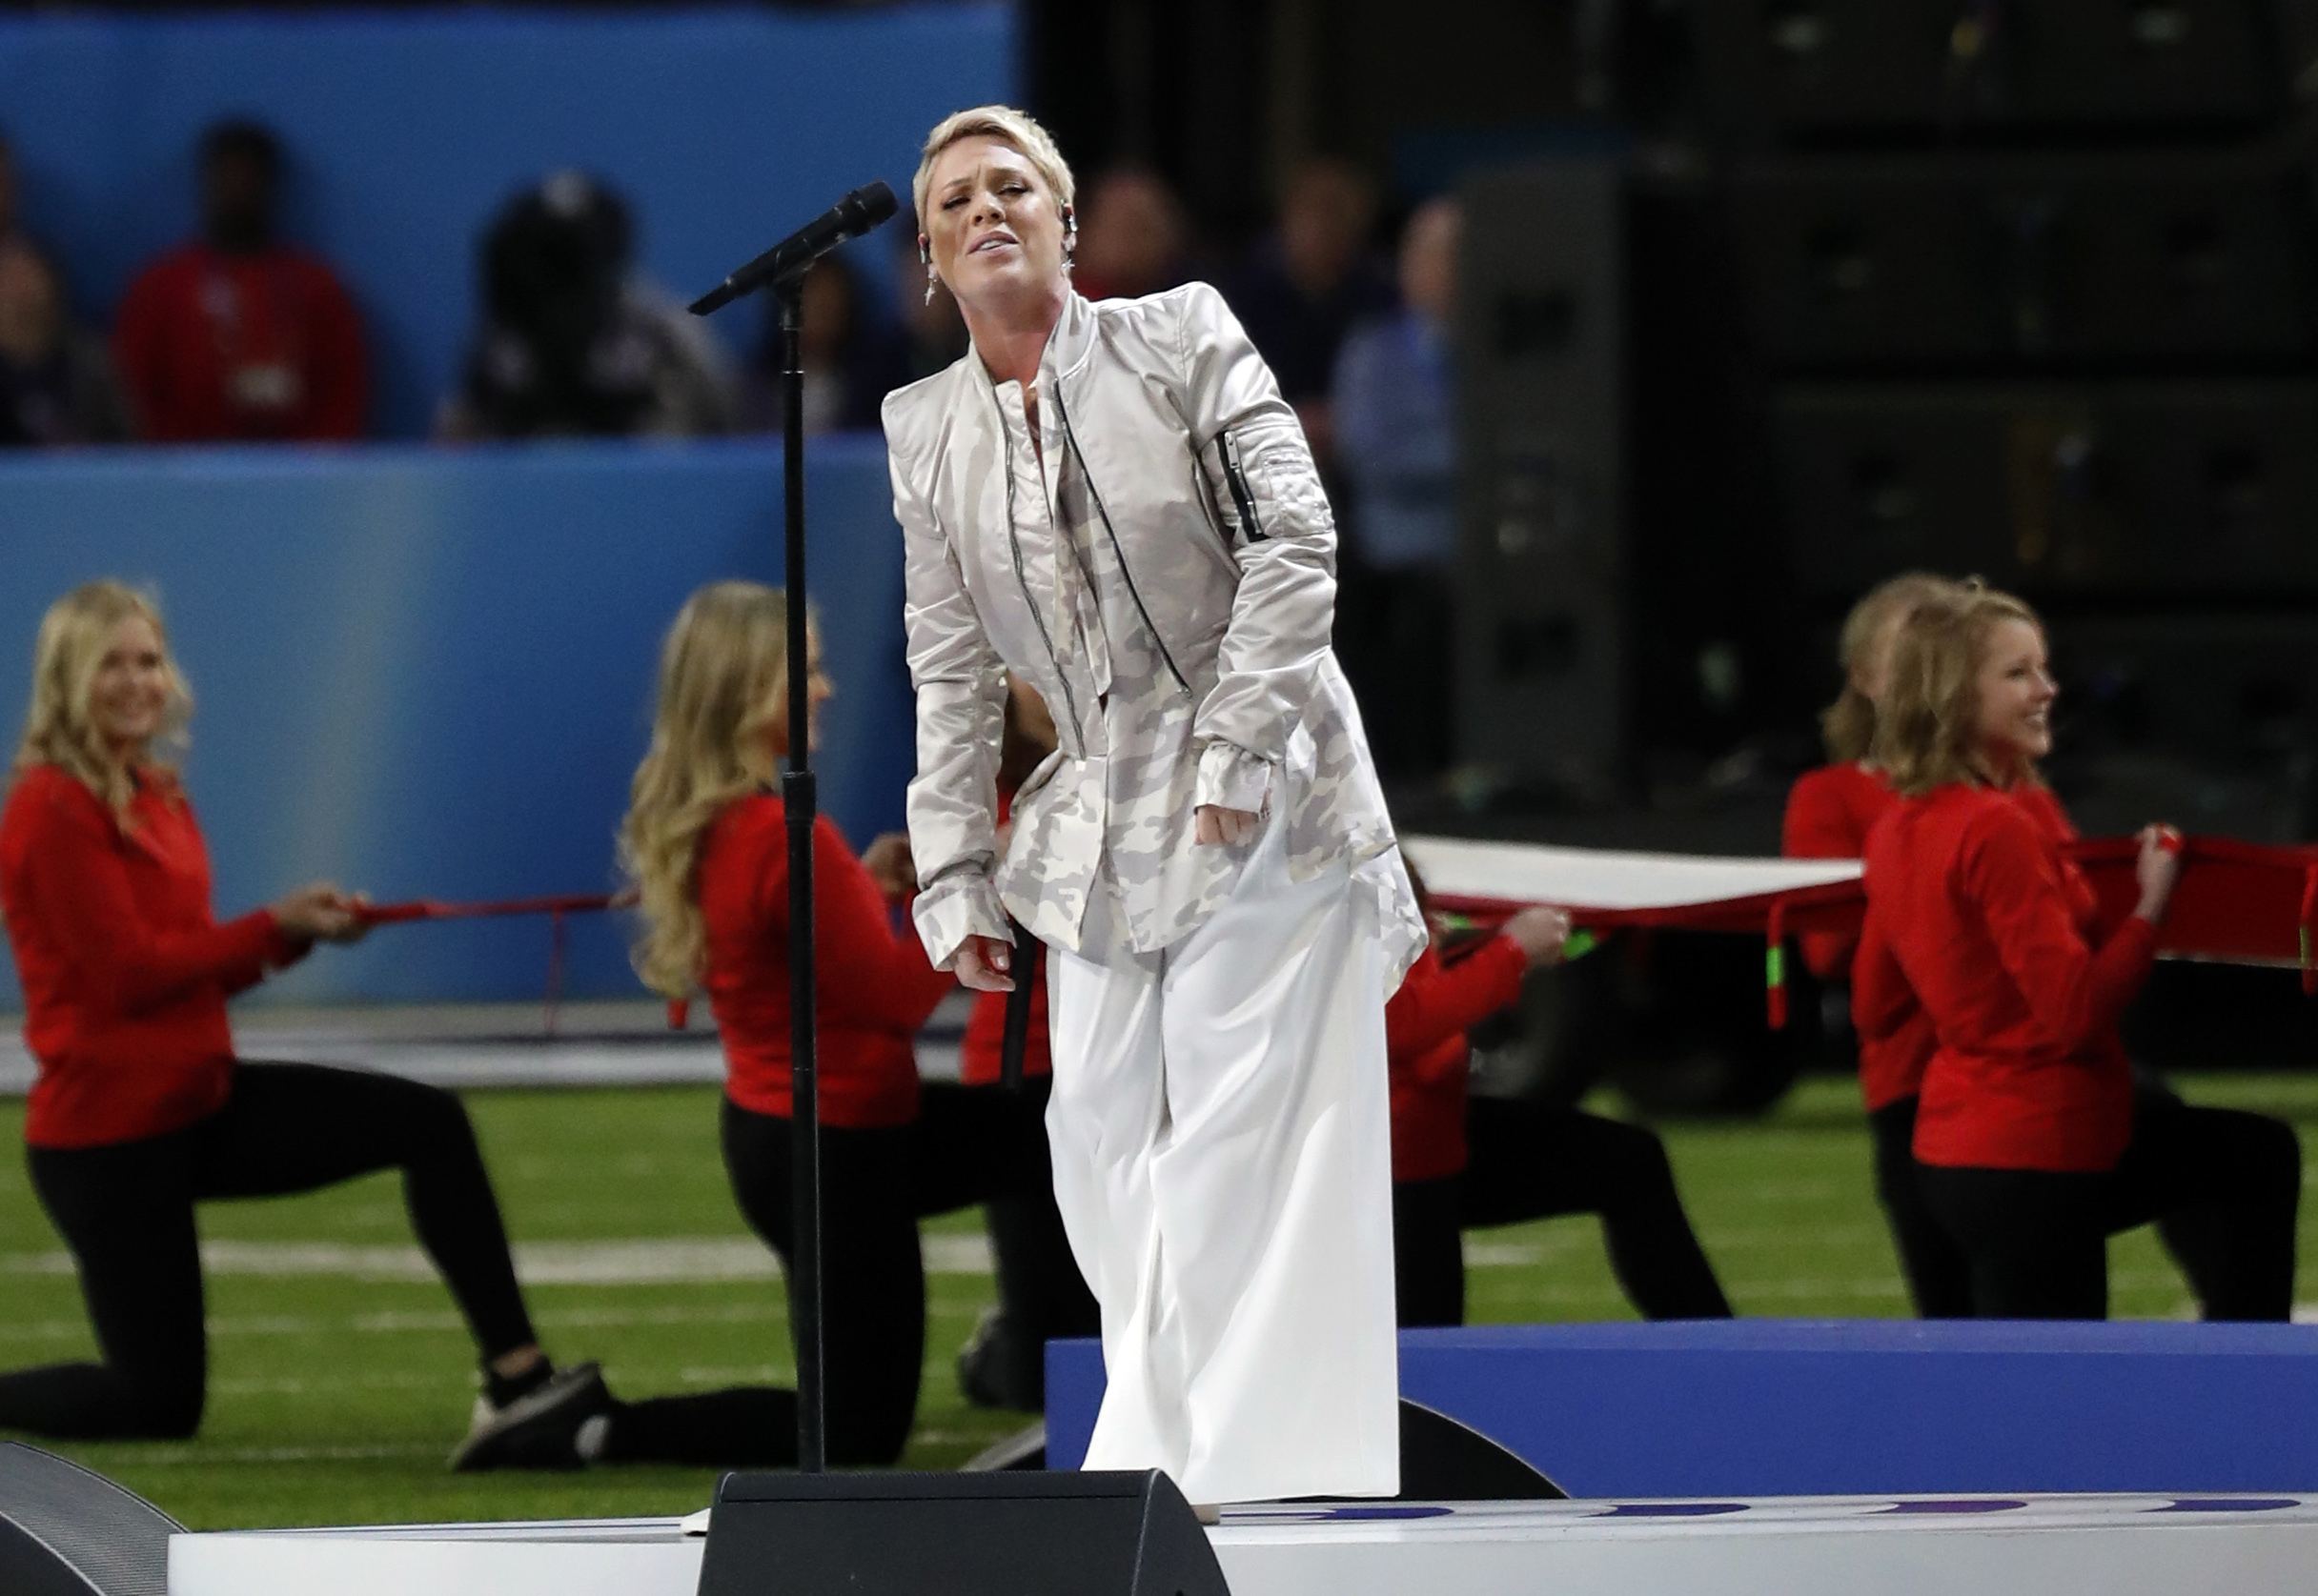 "<div class=""meta image-caption""><div class=""origin-logo origin-image ap""><span>AP</span></div><span class=""caption-text"">Pink performs the National Anthem, before the NFL Super Bowl 52 football game between the Philadelphia Eagles and the New England Patriots, Sunday, Feb. 4, 2018, in Minneapolis. (AP Photo/Tony Gutierrez)</span></div>"